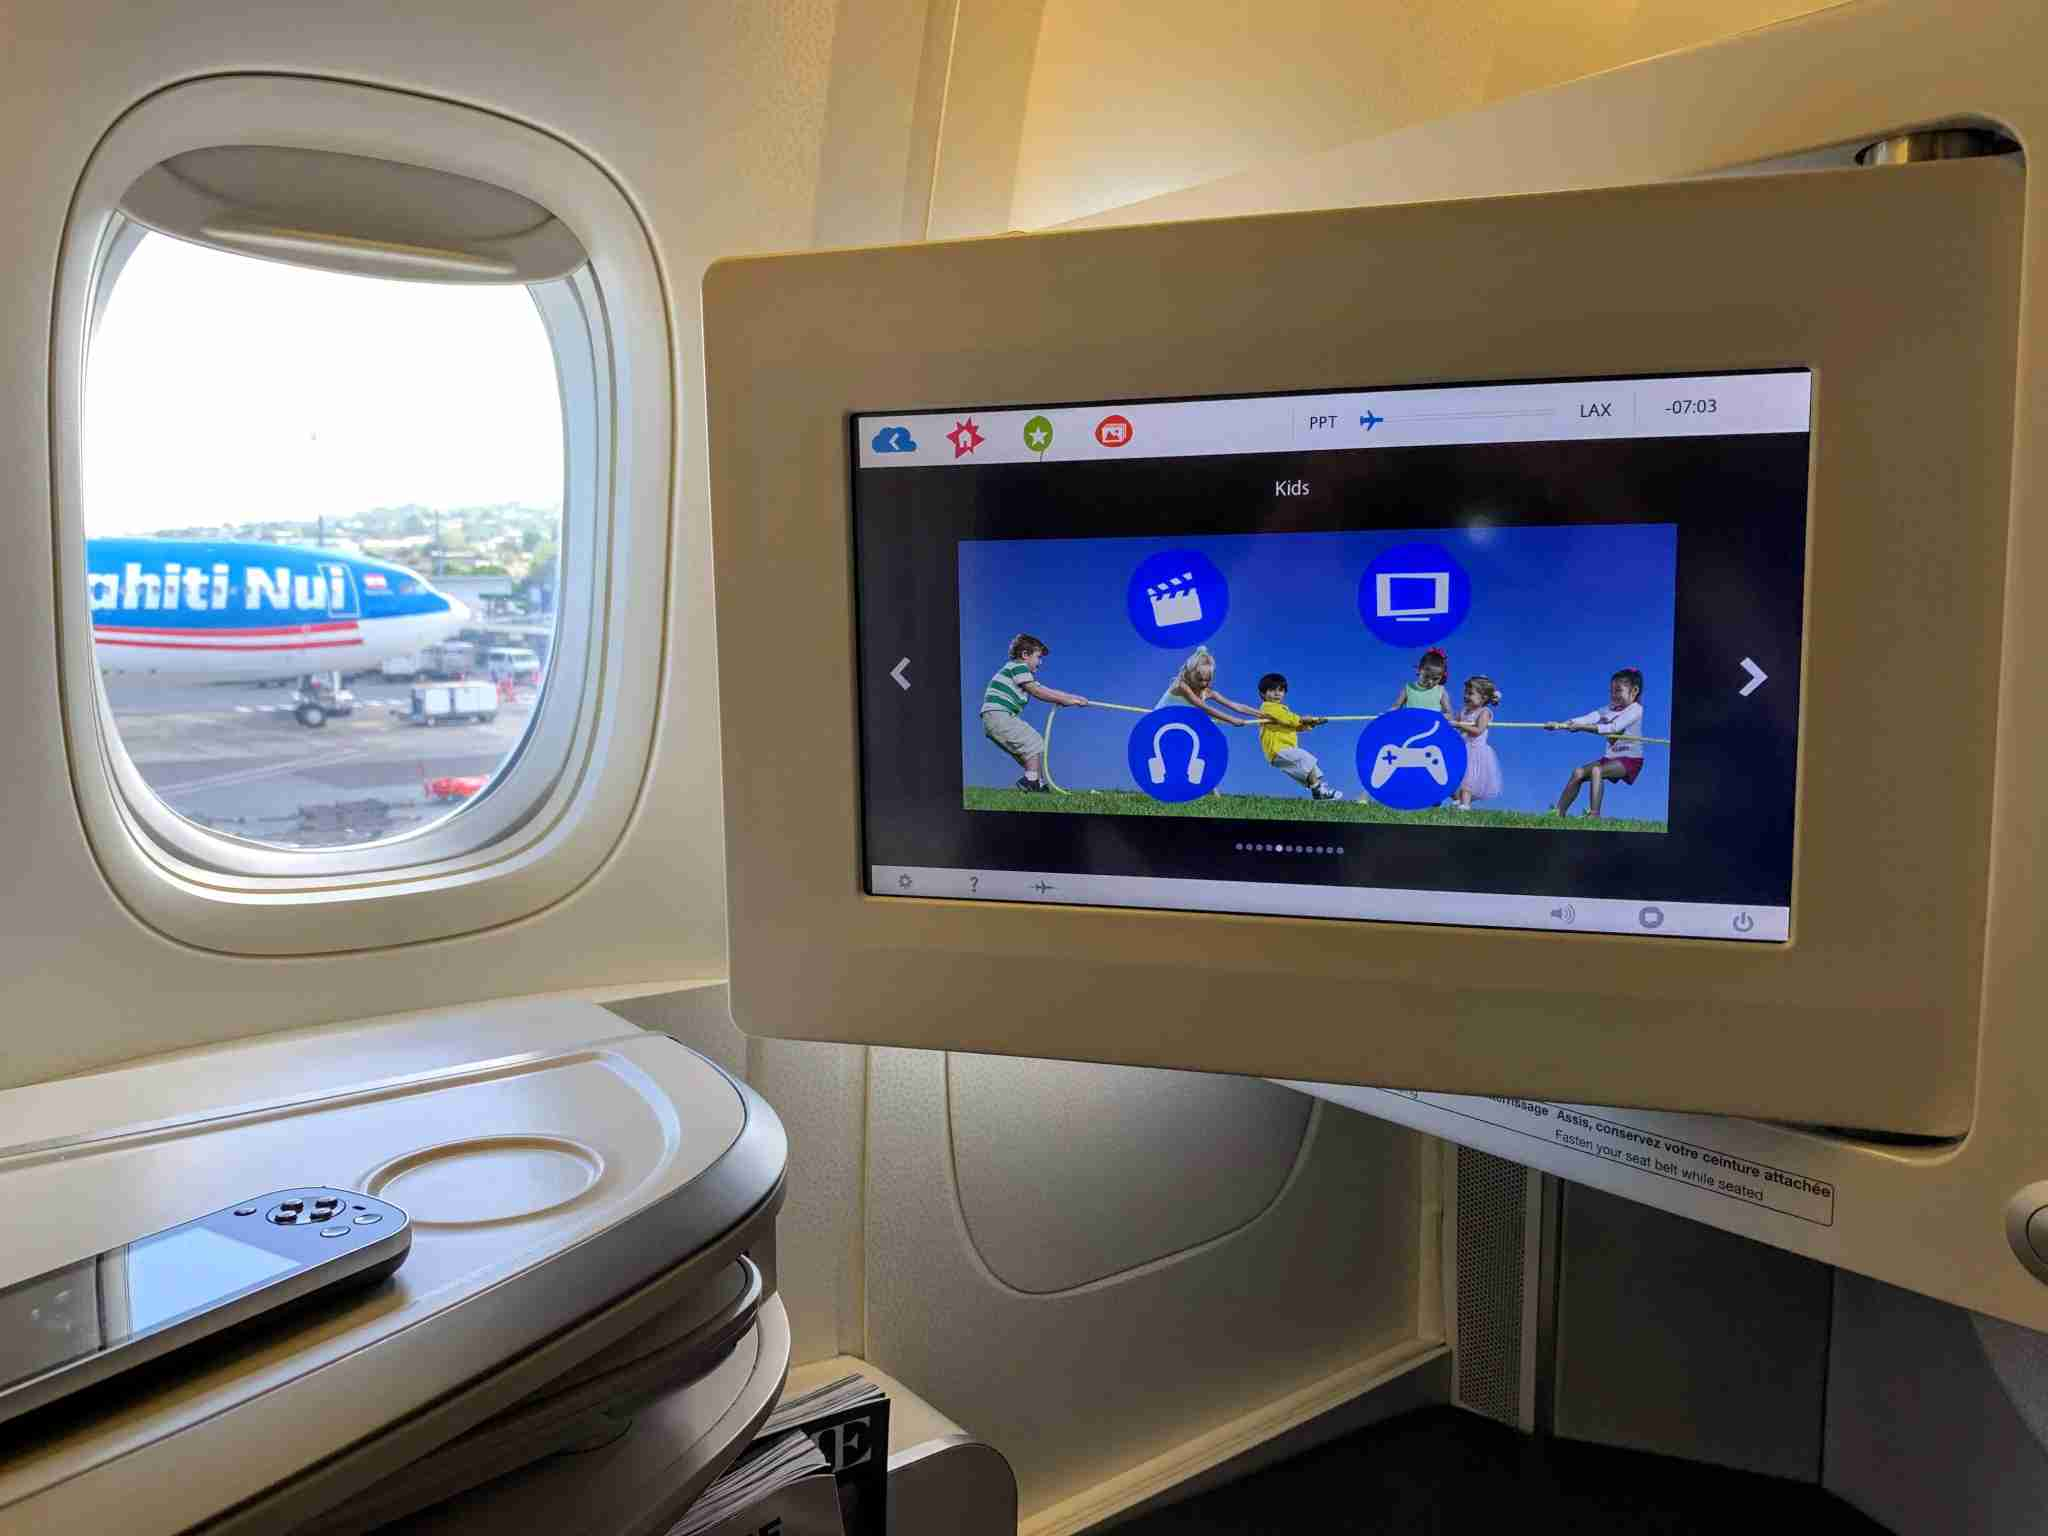 Air France Boeing 777 Business Class Seat LCD IFE Screen Kids content